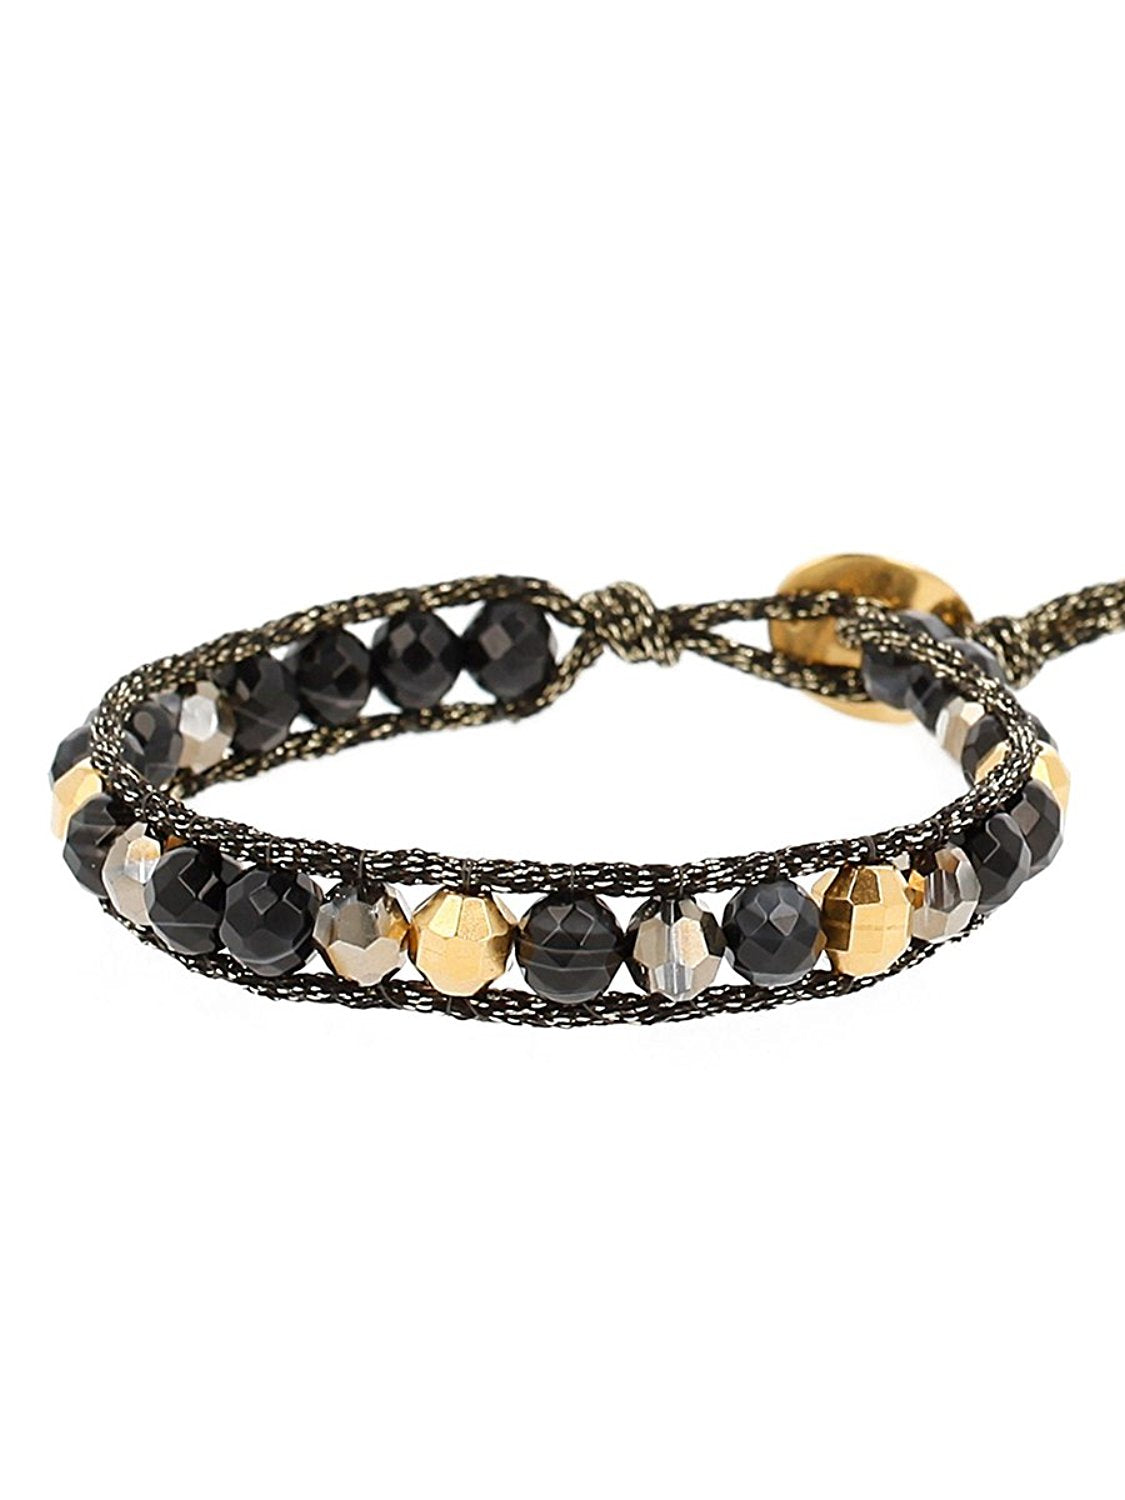 Chan Luu Black Semi Precious Stones and Gold Plated Accents Adjustable Bracelet